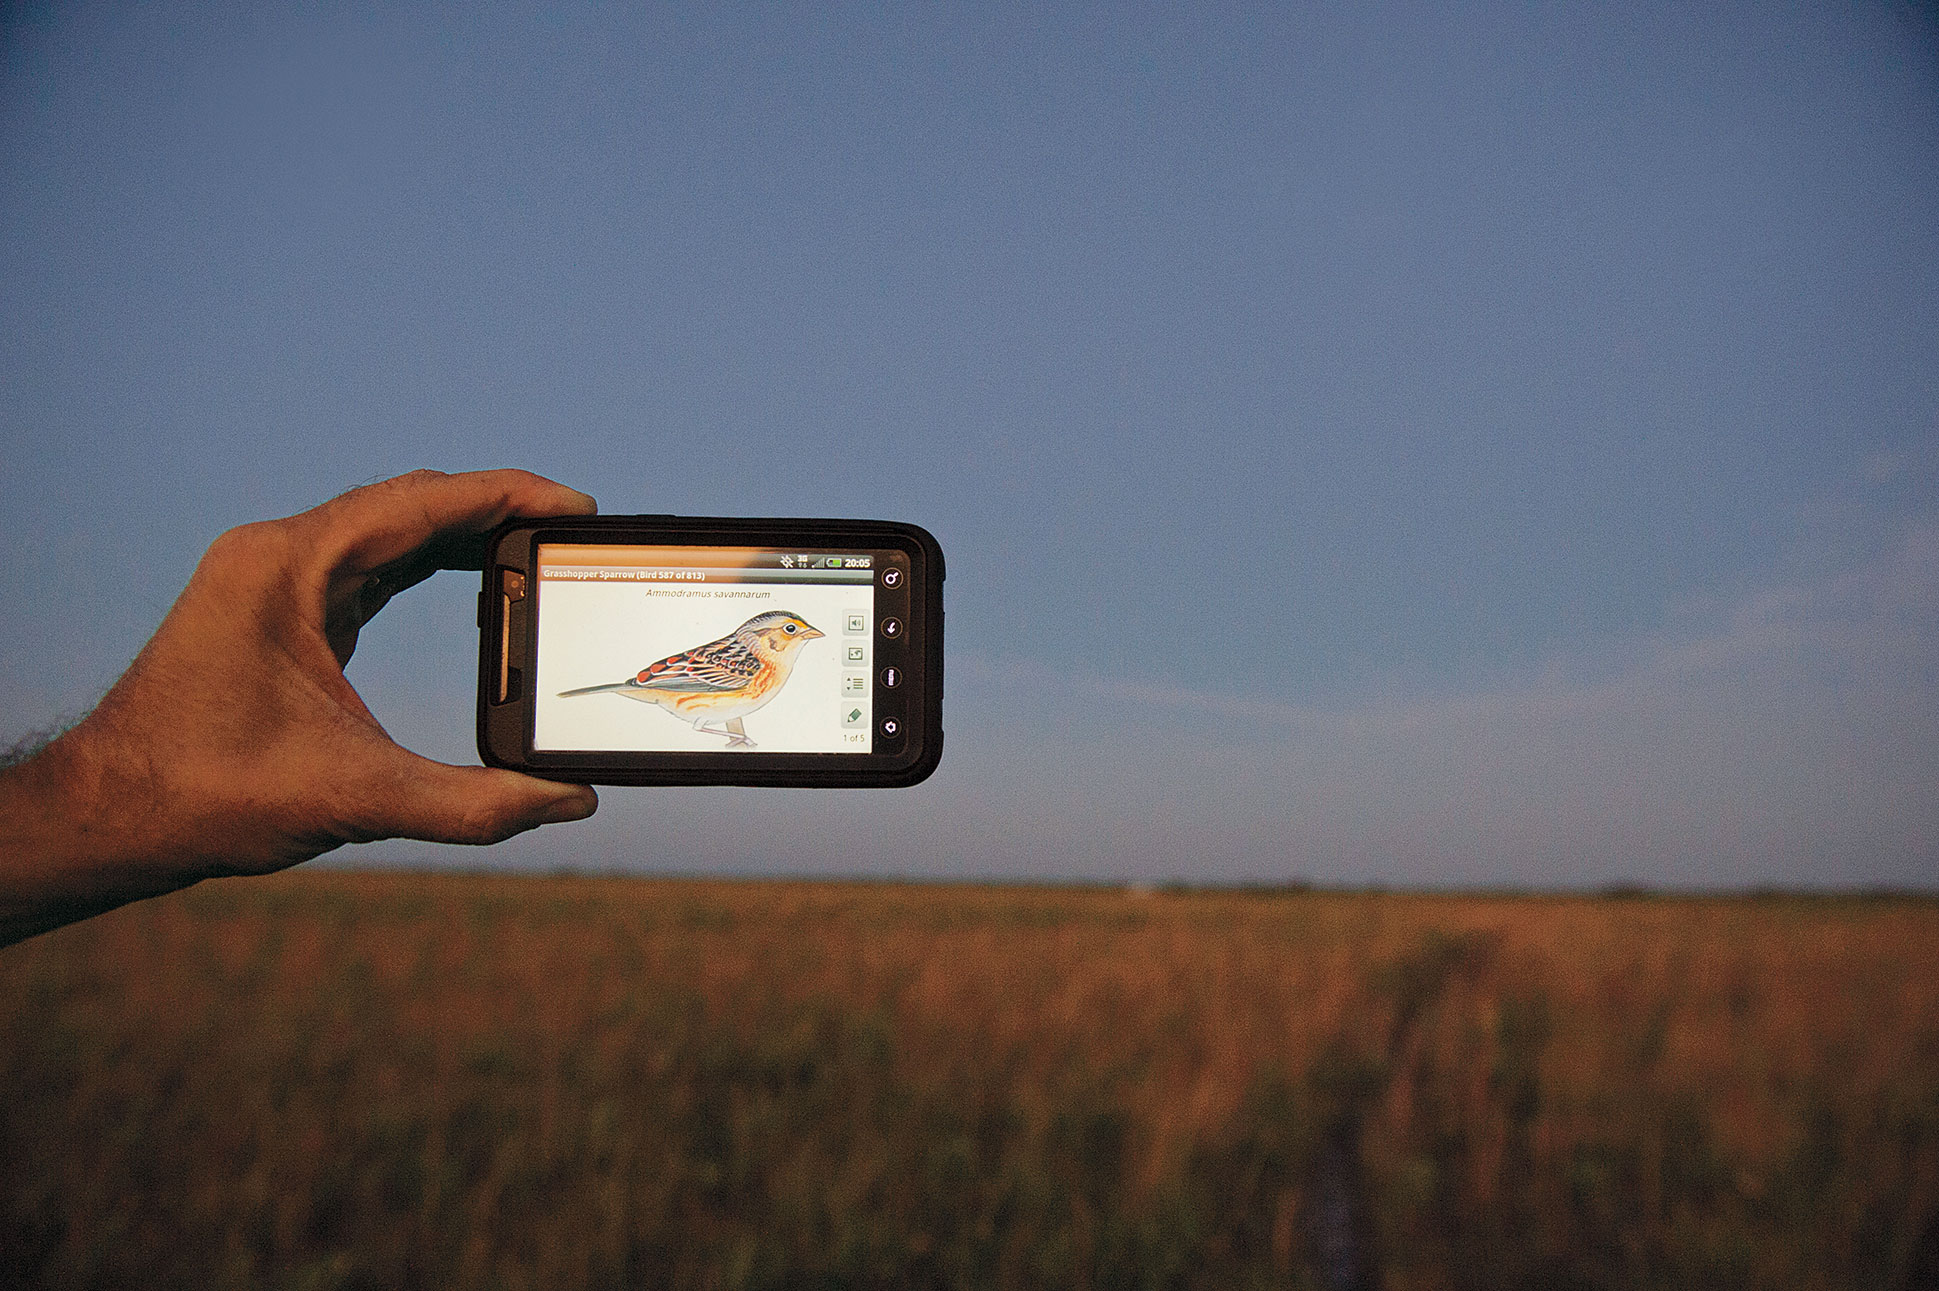 Paul Miller plays the Grasshopper Sparrow's song on an iPhone, hoping to lure a male to a mist net. Joel Sartore